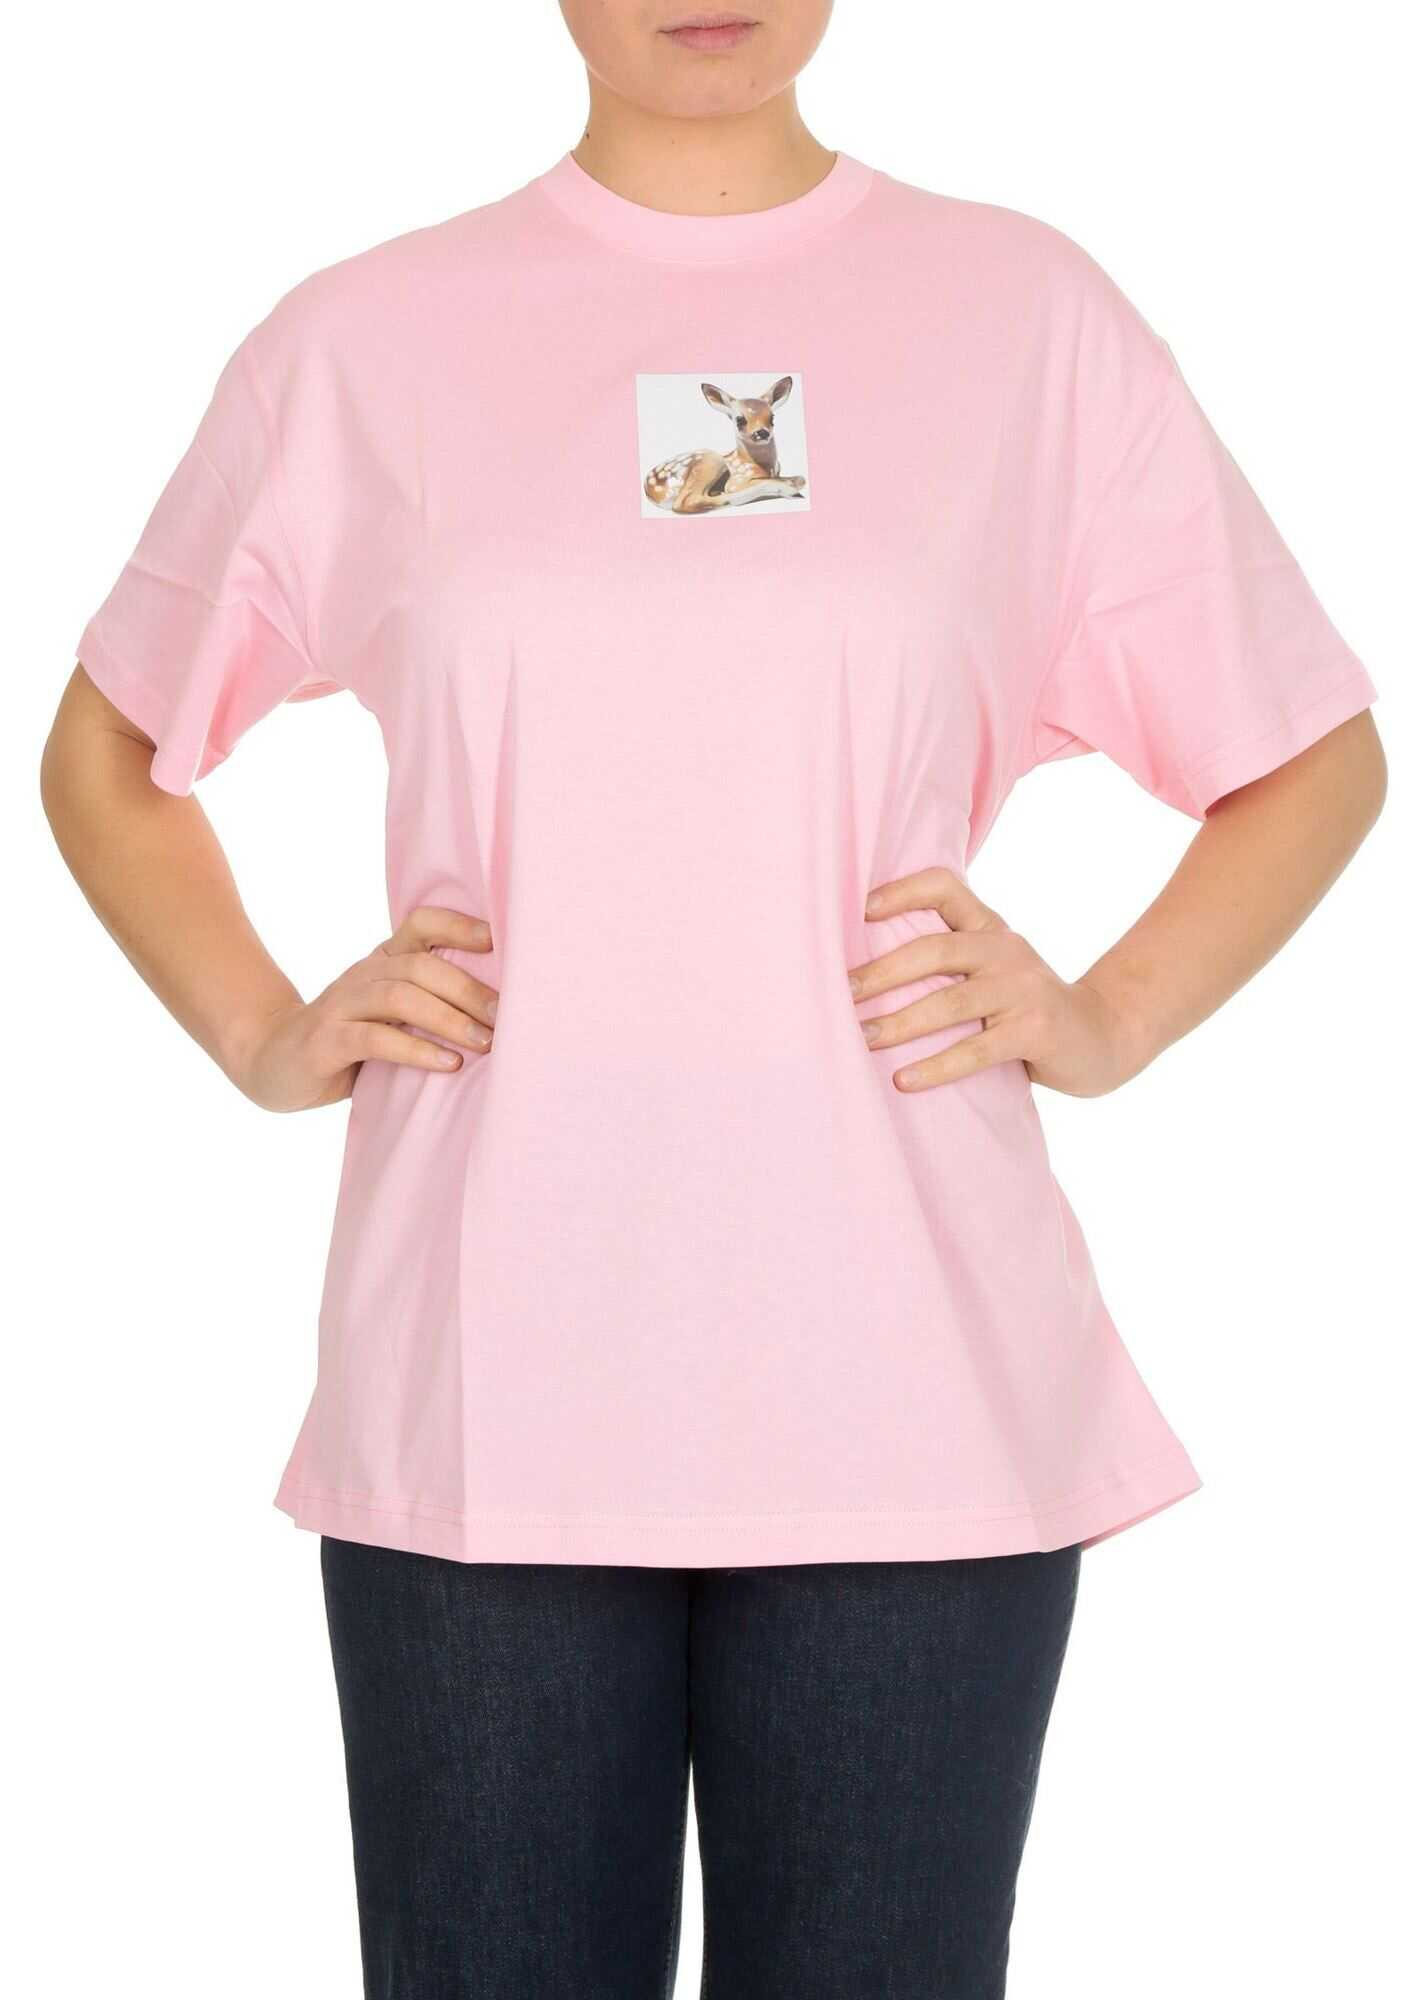 Burberry Deer T-Shirt In Candy Pink Pink